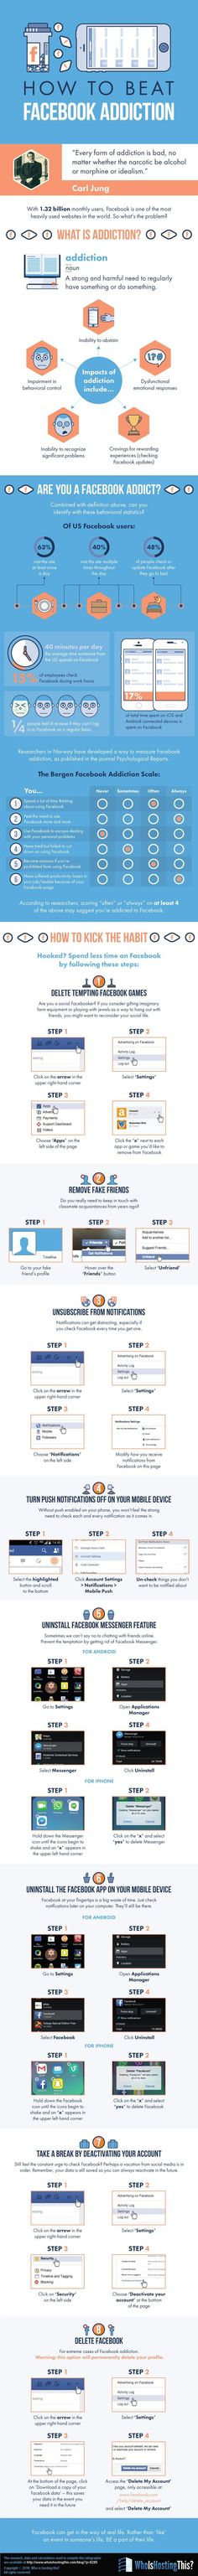 Infographic: How to Beat Facebook Addiction